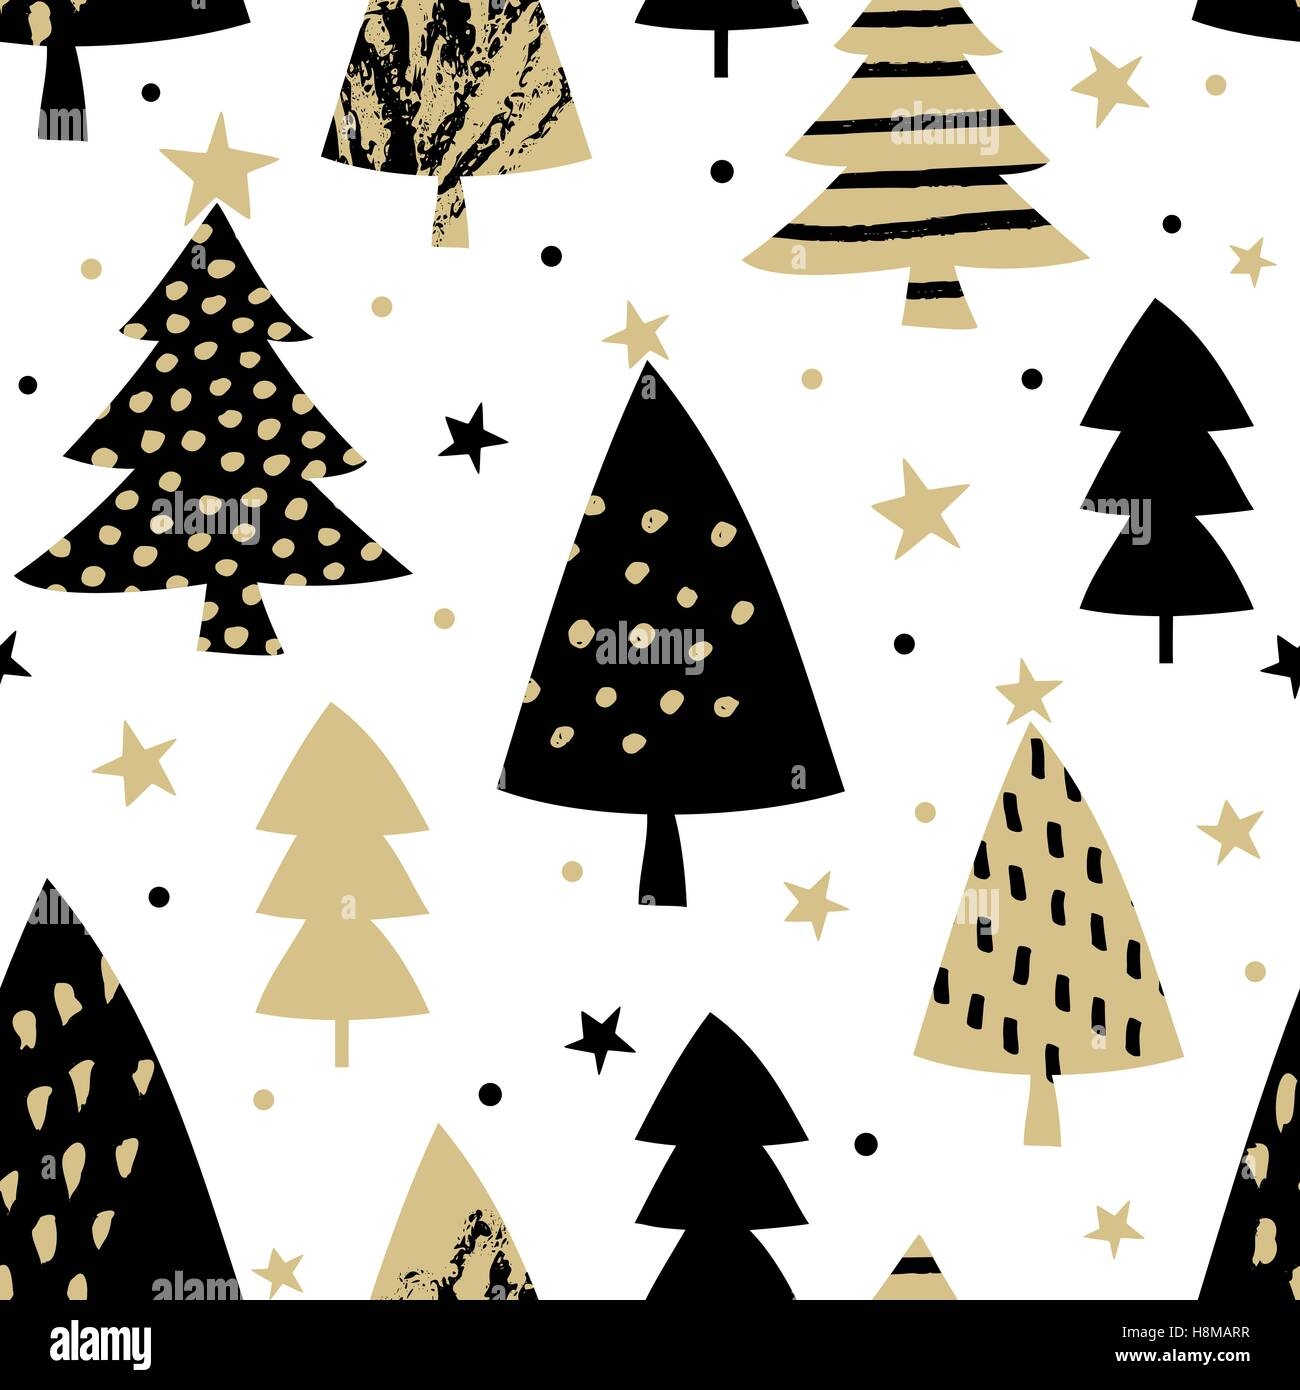 Seamless Repeating Pattern With Christmas Trees In Black And Gold